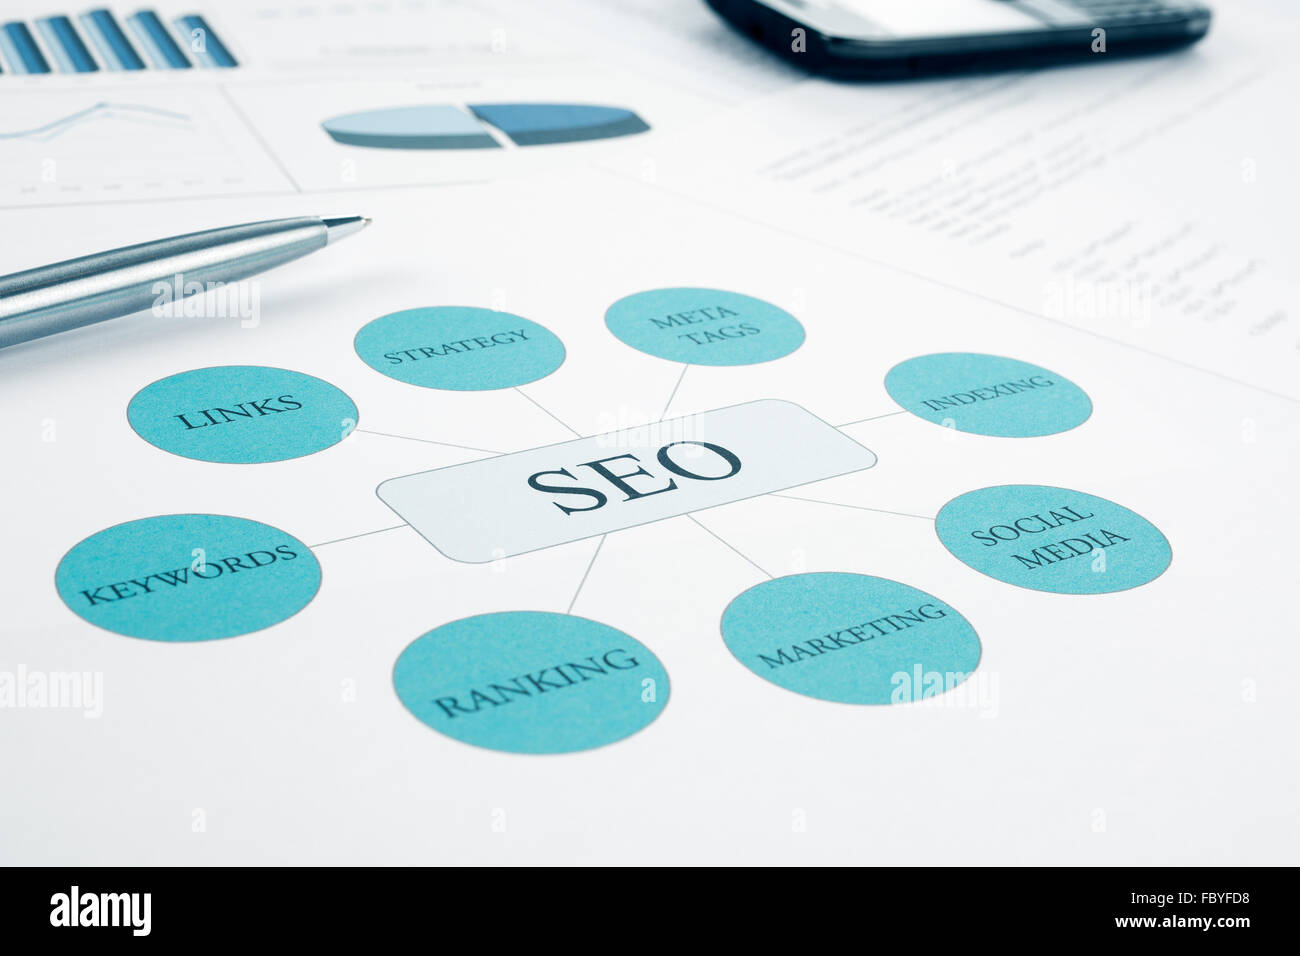 Seo business, search engine optimization concept flow chart. Pen and smartphone on background. Blue Toned - Stock Image